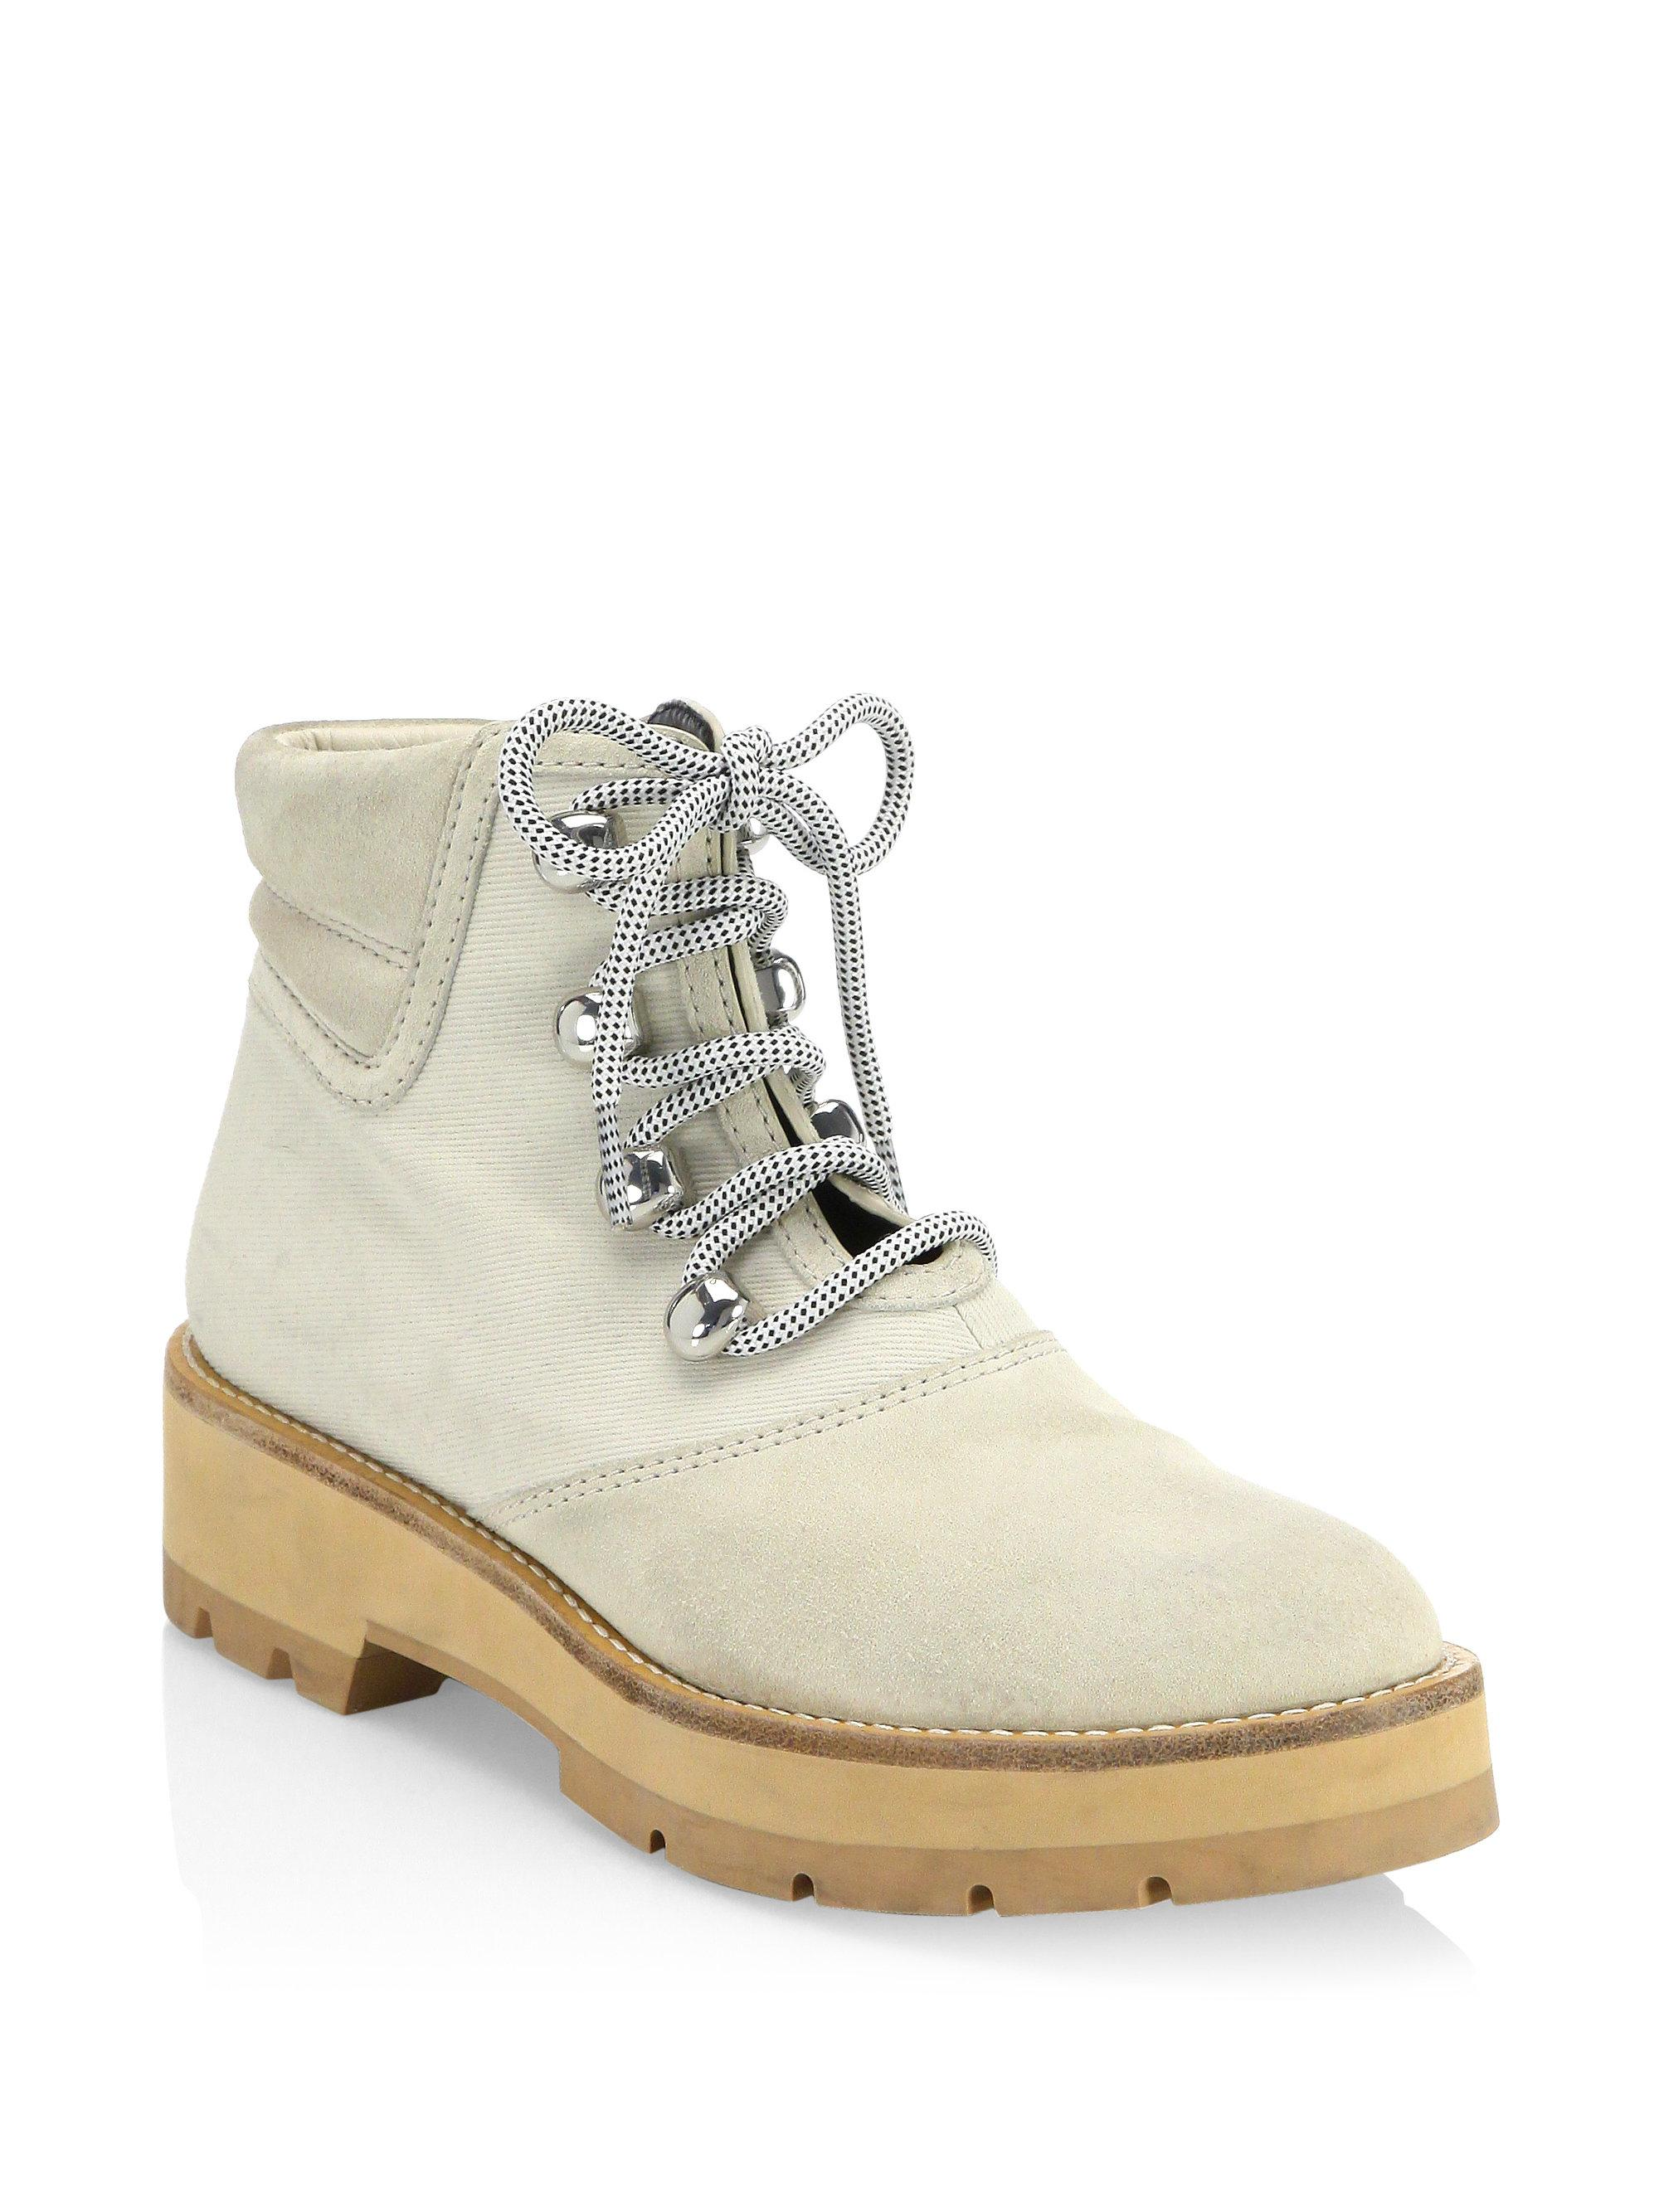 very cheap cheap online free shipping extremely 3.1 Phillip Lim Beige Dylan Hiking Boots cheap discounts with mastercard cheap online cheap footlocker finishline 8Jaqpb